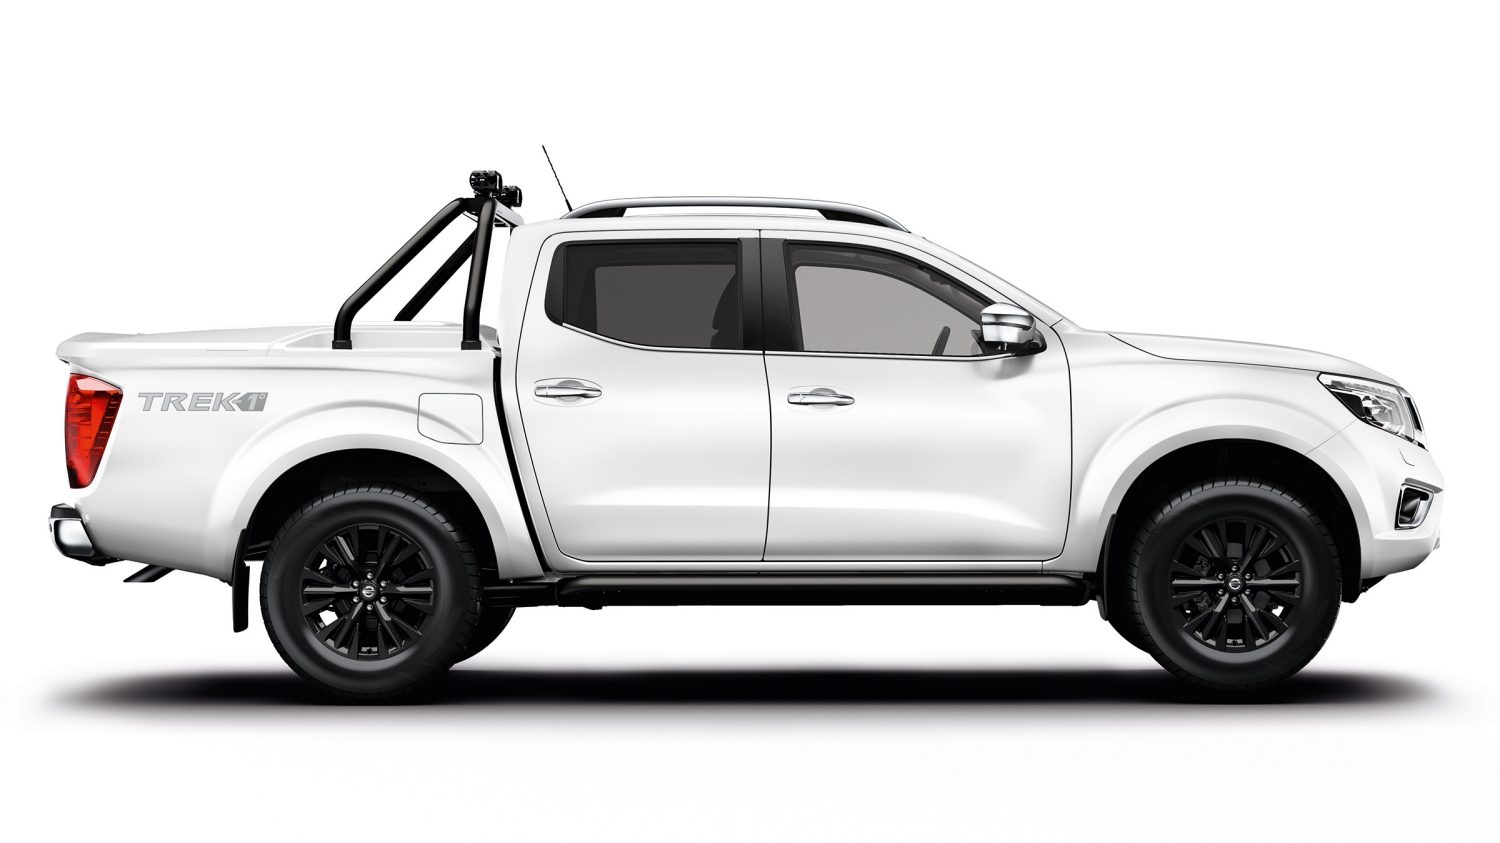 nissan navara sondermodell pick up 4x4 nissan. Black Bedroom Furniture Sets. Home Design Ideas